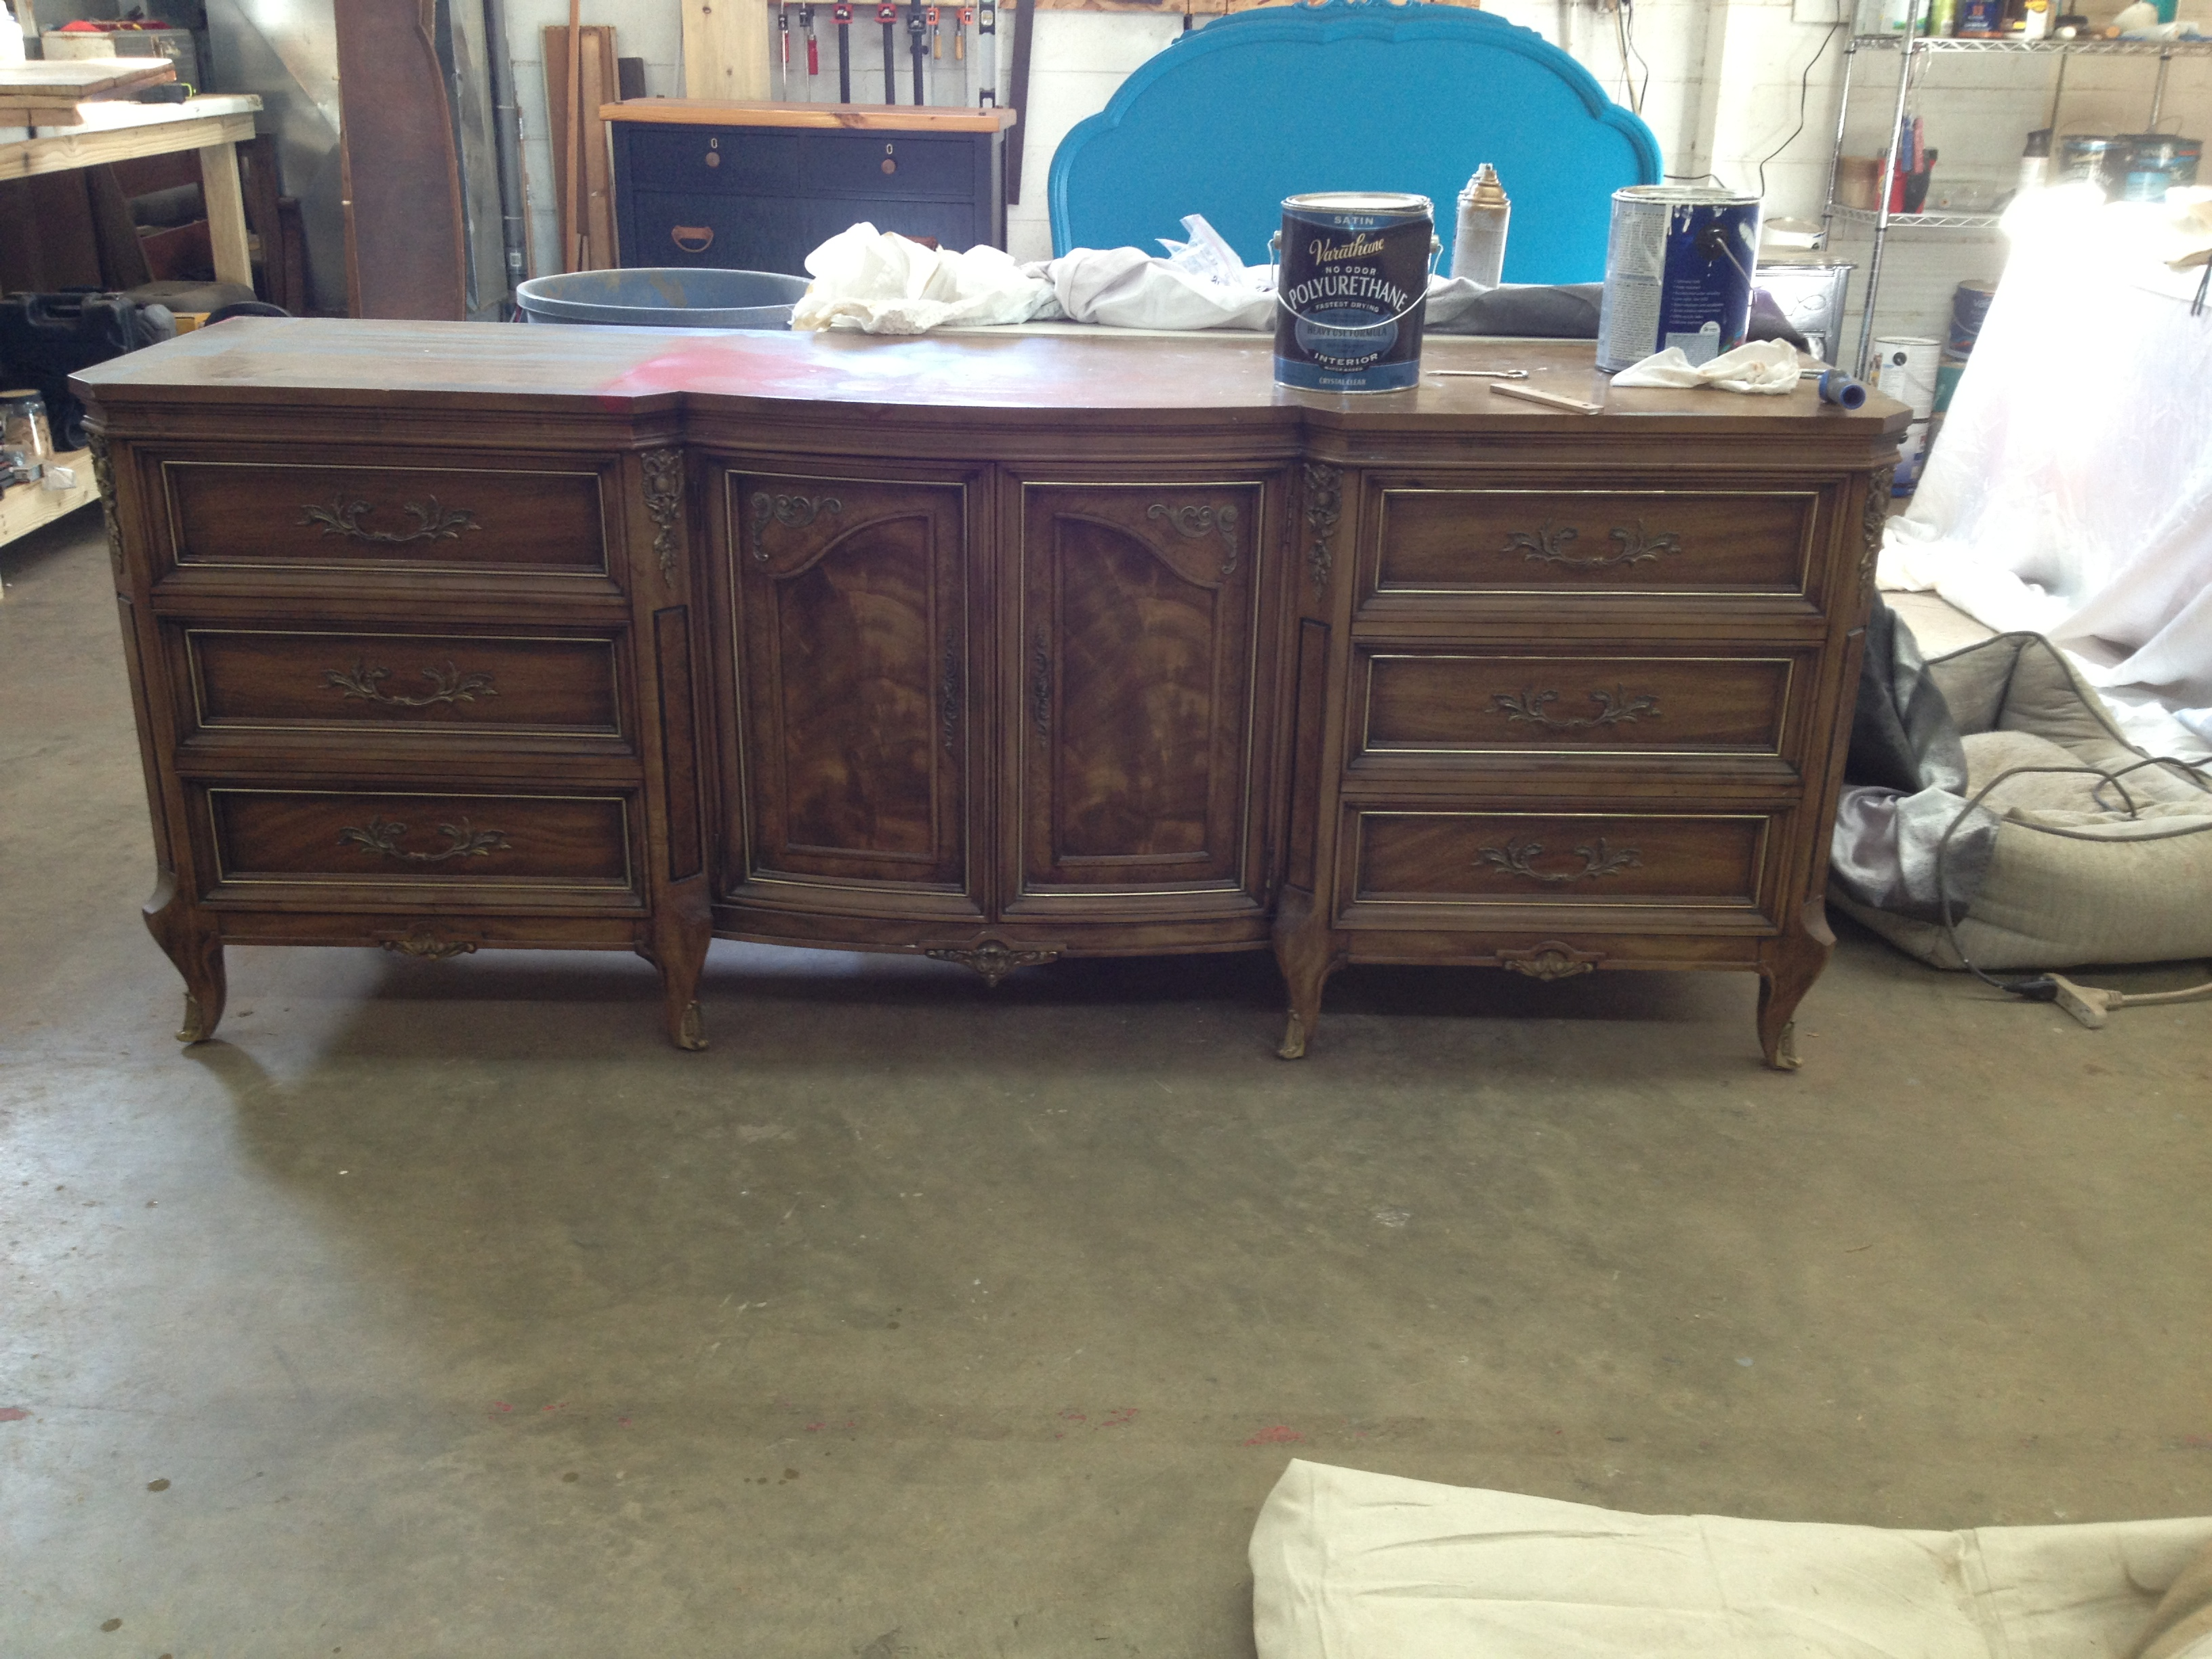 Rescued Furnishings St Louis Mo Vintage Painted Customized Furniture Rescue Restore